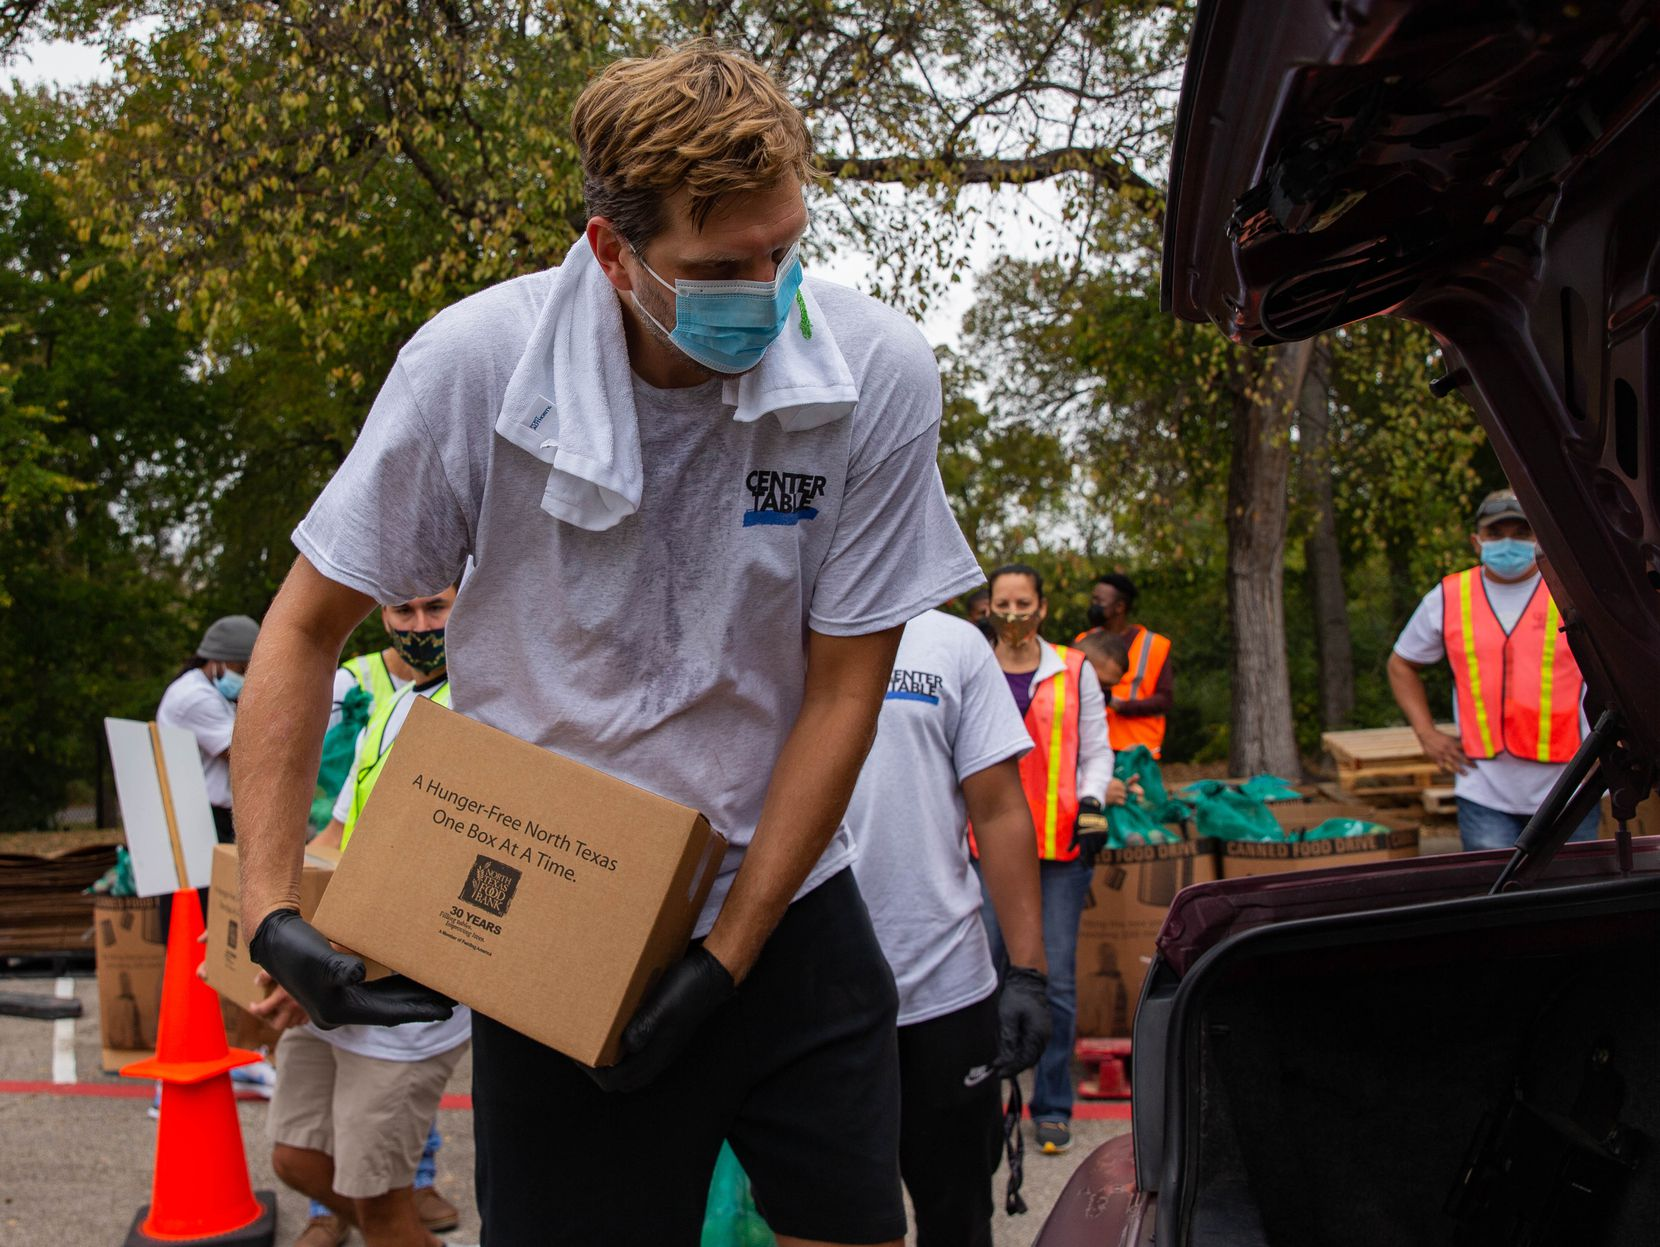 Former Dallas Mavericks player Dirk Nowitzki (left) loads a car during the Center Table Fall Harvest food drive at the Mark Cuban Center in Dallas on Thursday, Oct. 22, 2020.